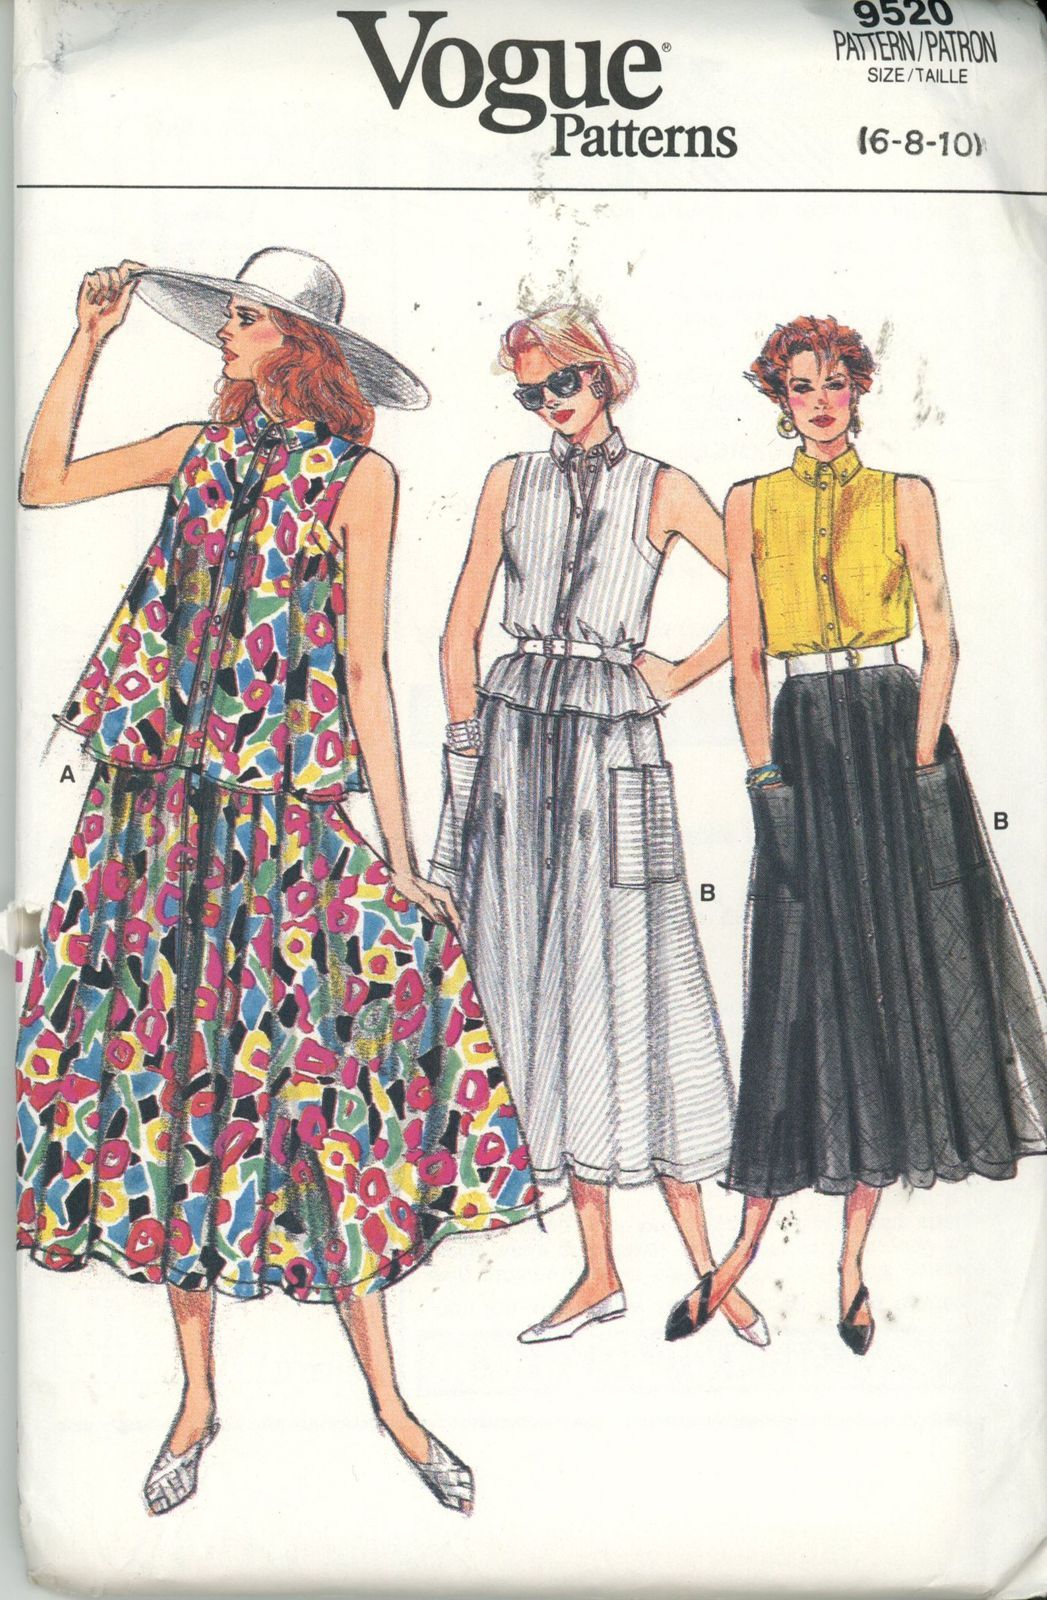 Vogue 9520 Misses Top and Skirt Size 6-8-10 - UNCUT - Sewing Patterns 4191faf31